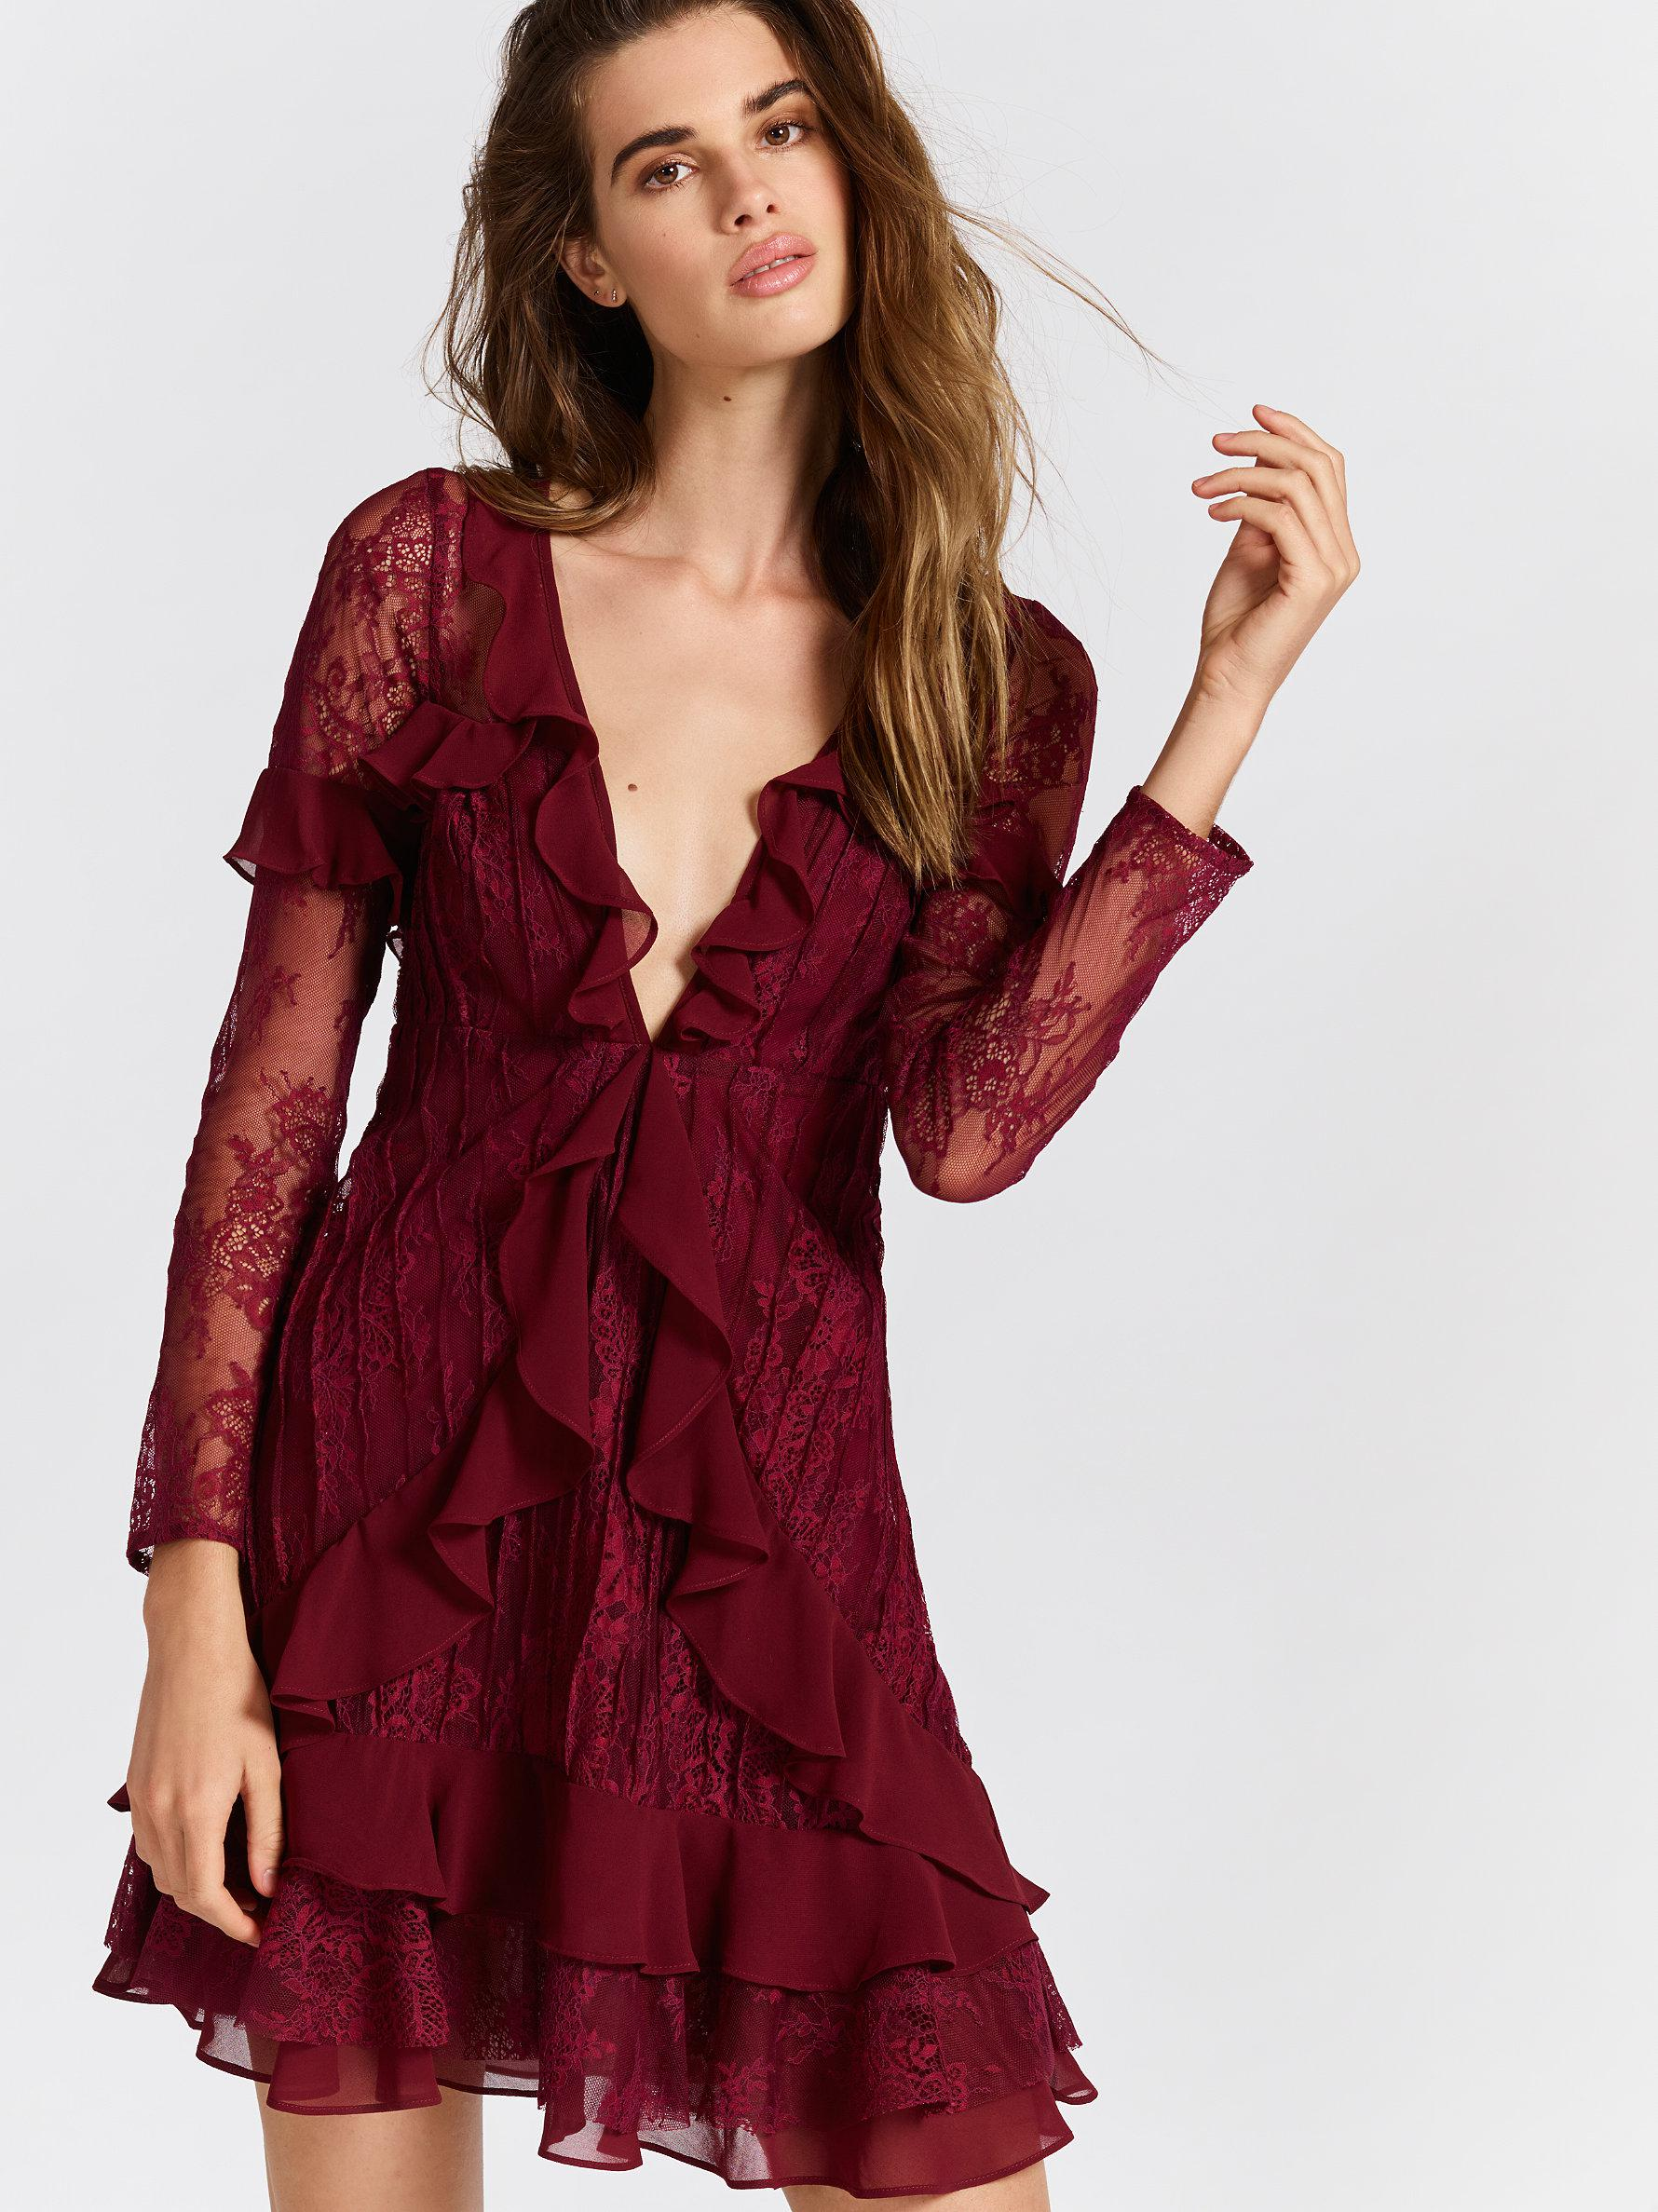 e282bf04bbd9 Free People Clothes Dresses Daphne Lace Mini Dress in Red - Lyst